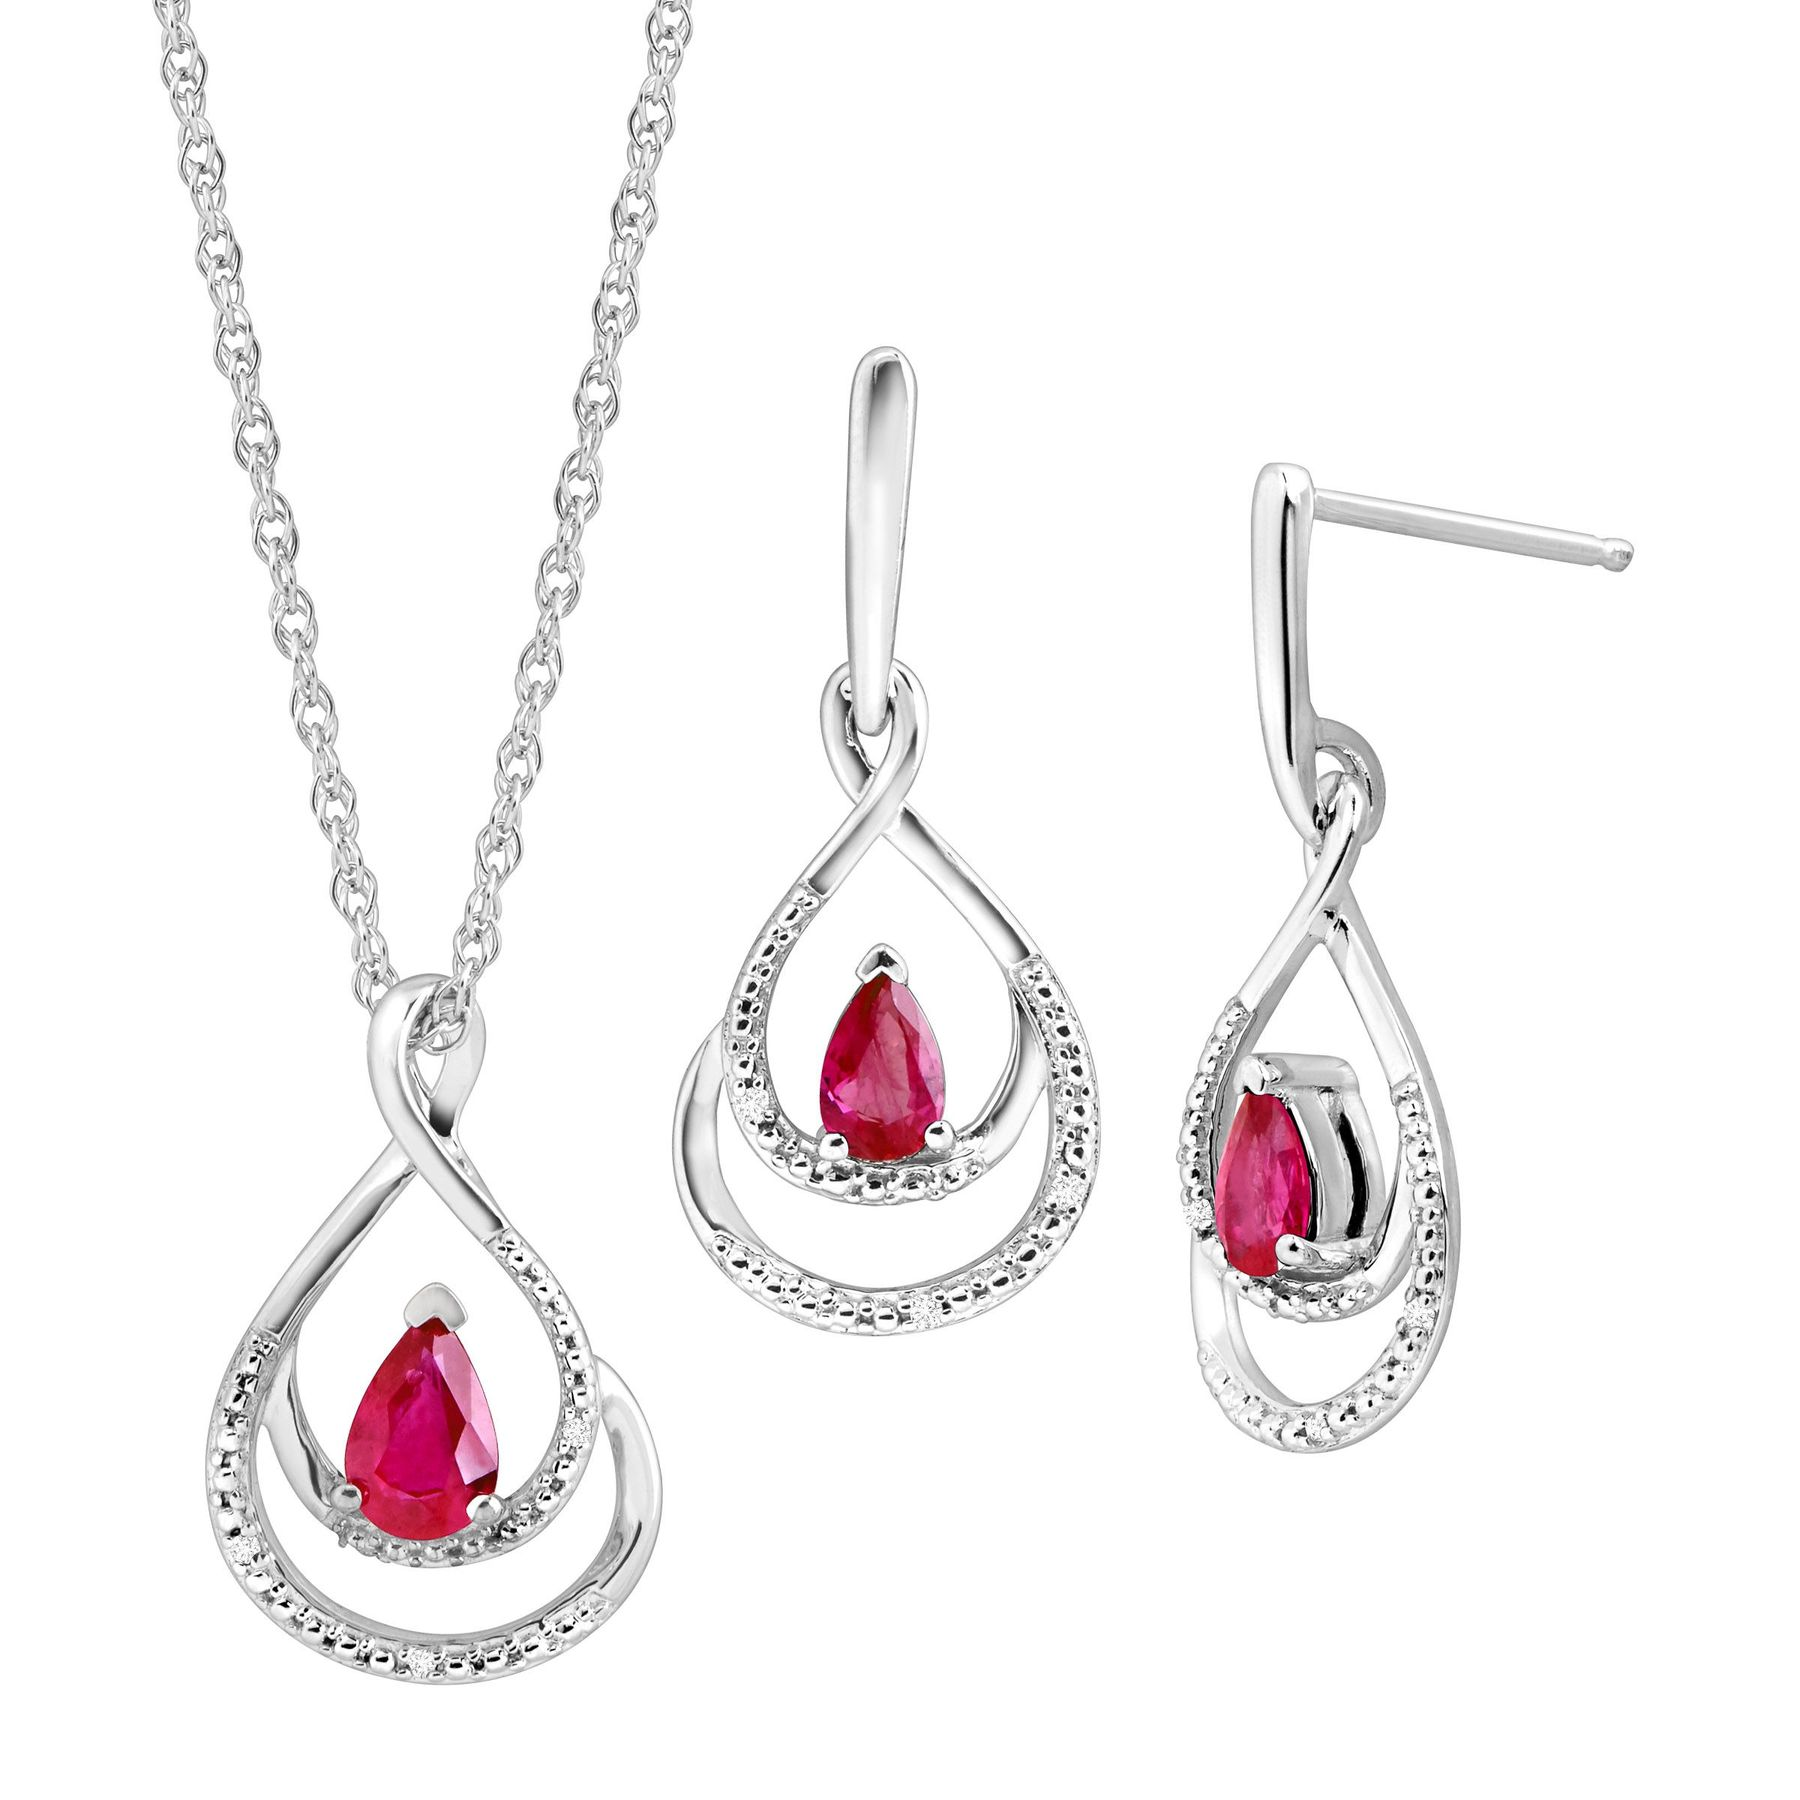 chatfield sara seed from jewellery with original pomegranate necklace collections rubies glass ruby jewelry products